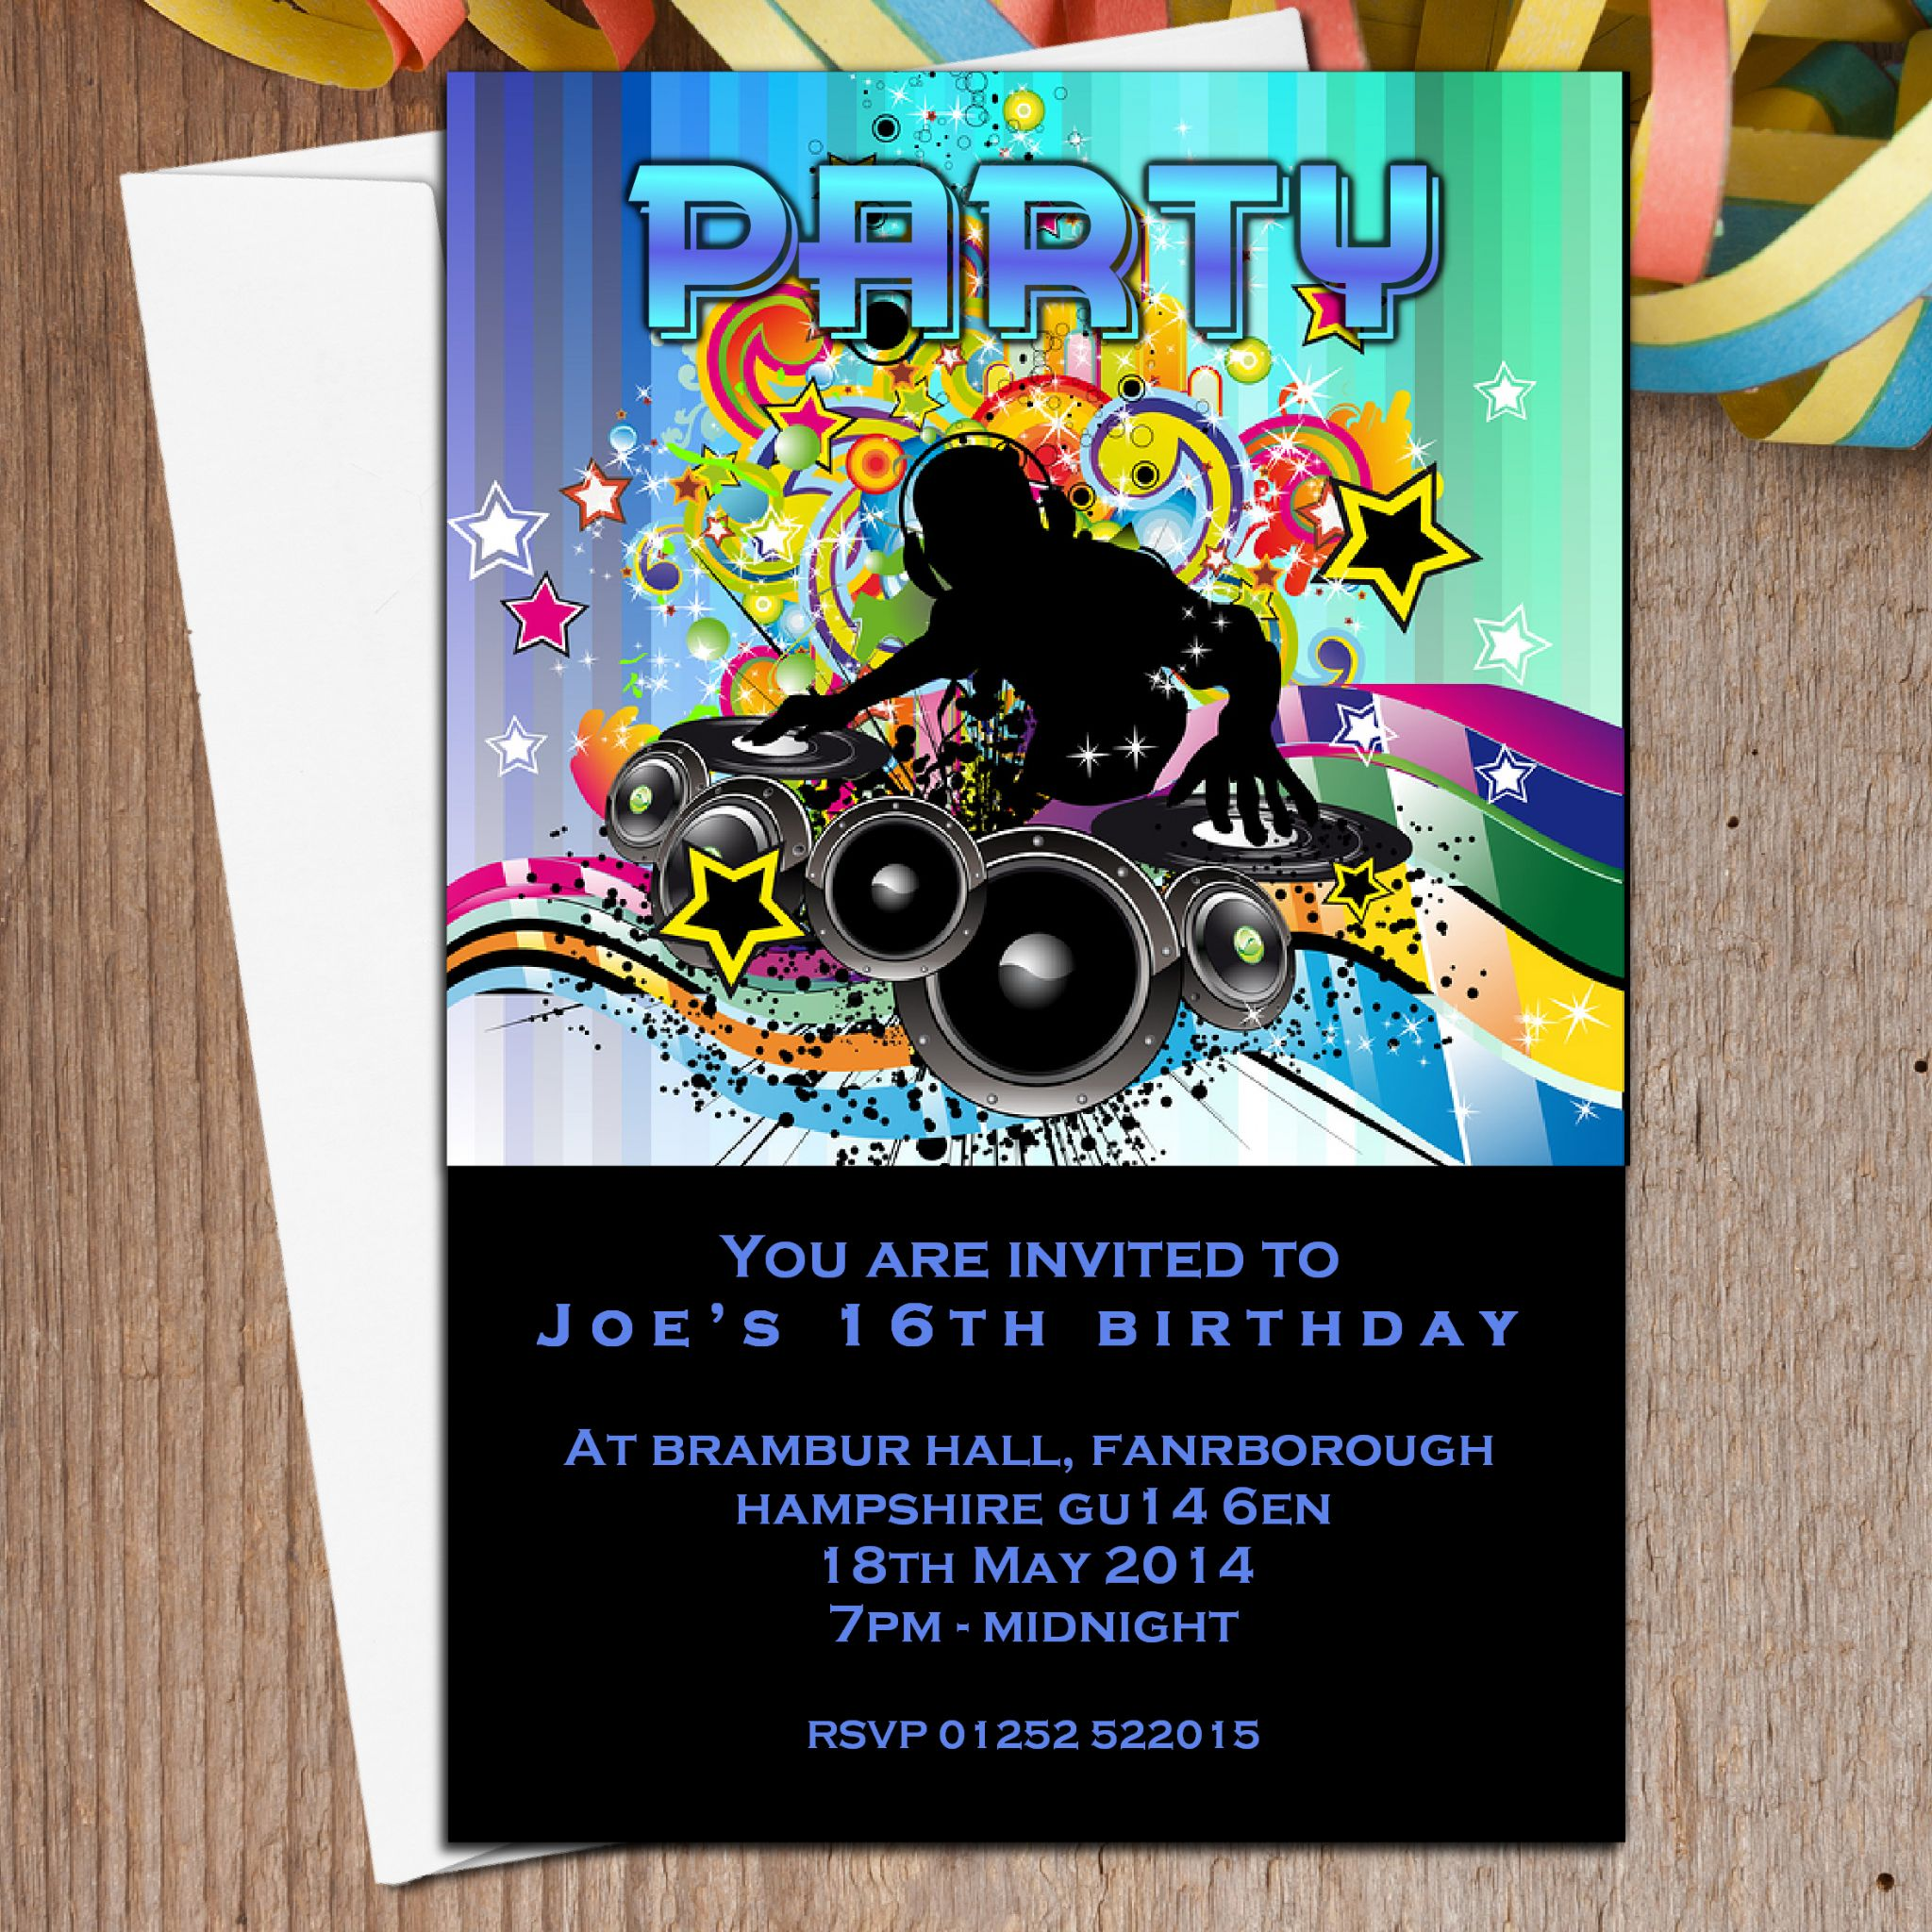 Disco Party Invite was beautiful invitations template